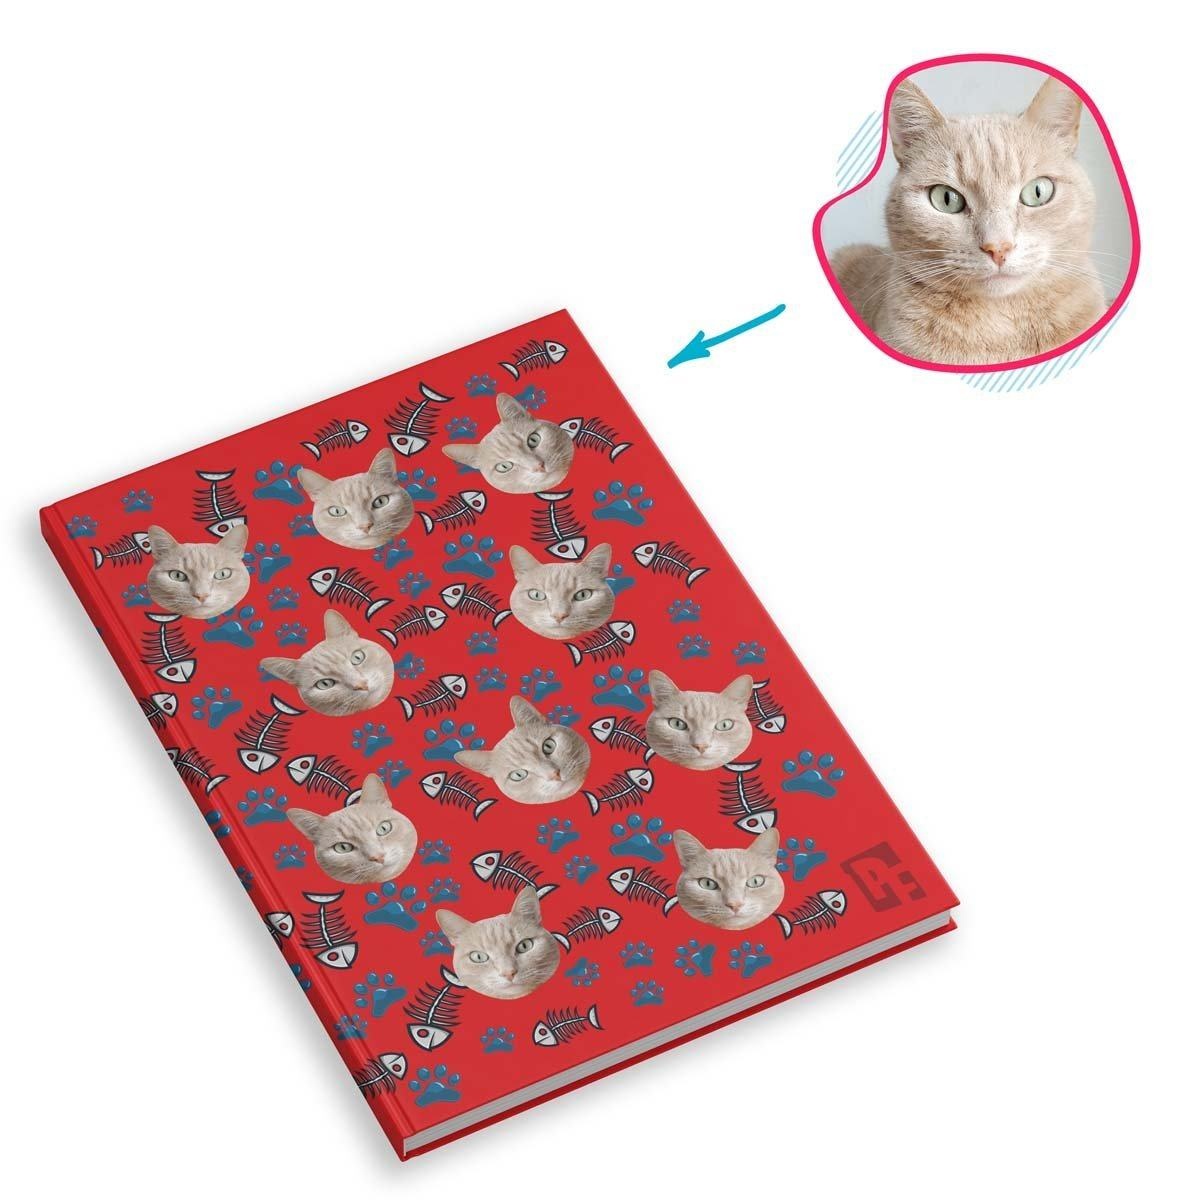 red Cat Notebook personalized with photo of face printed on them